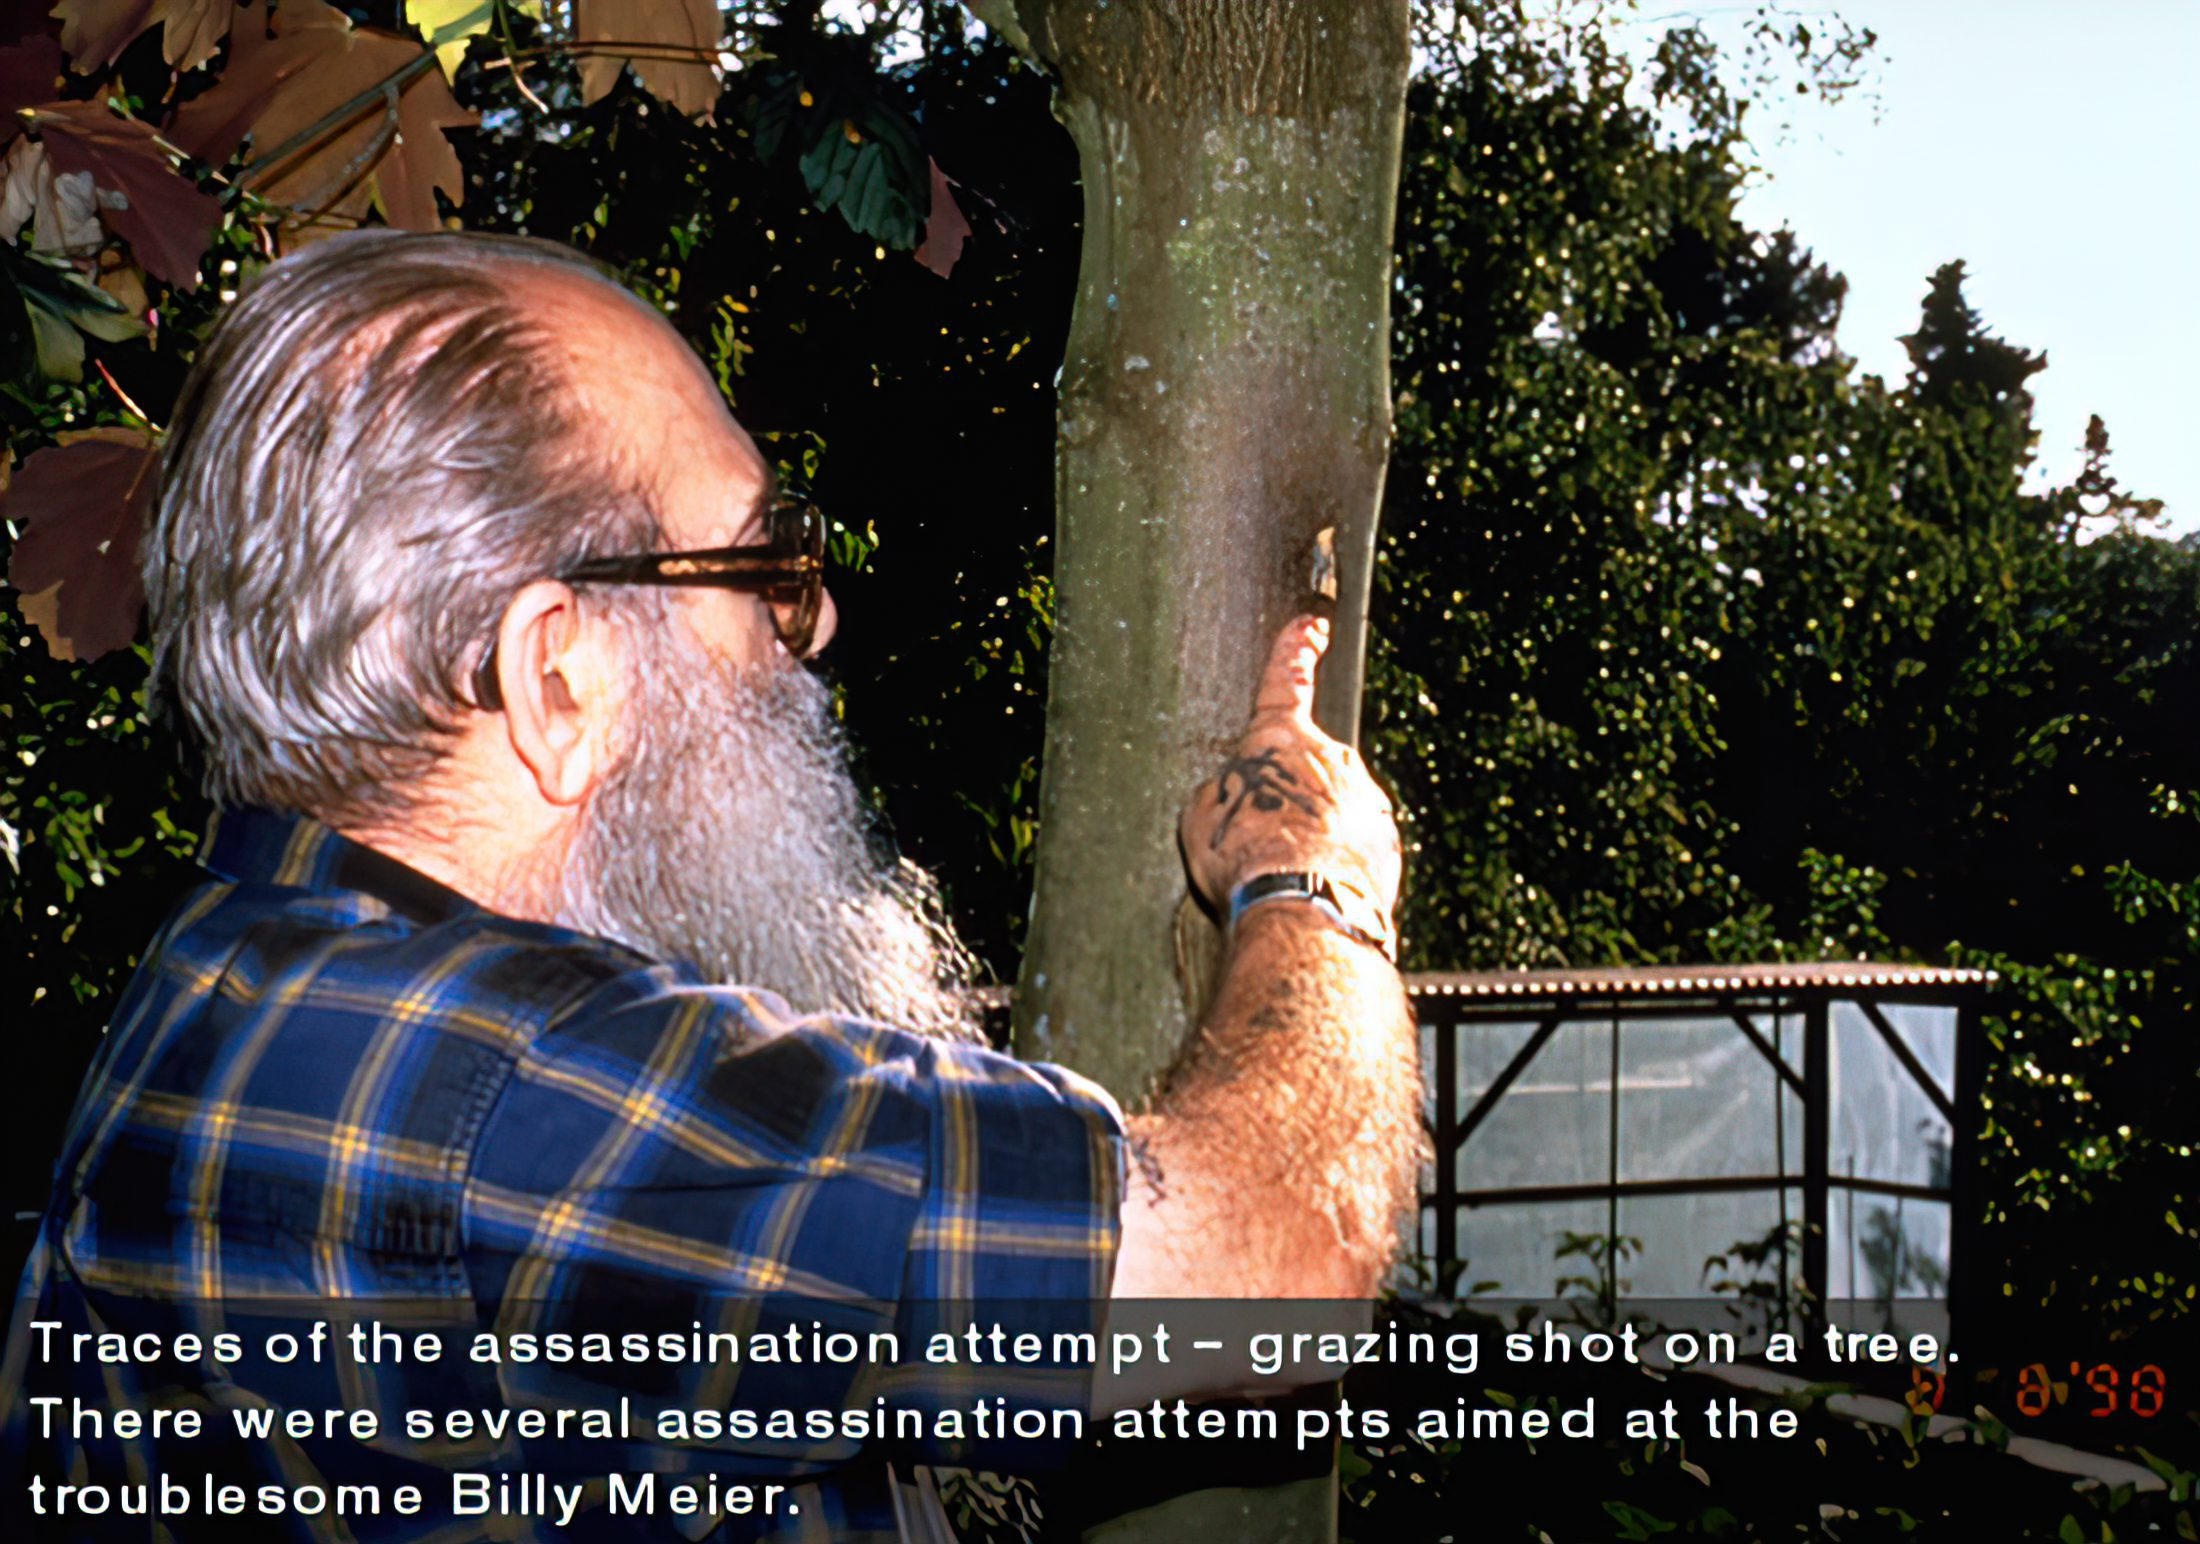 Billy - Showing grazed tree during assassination attempt